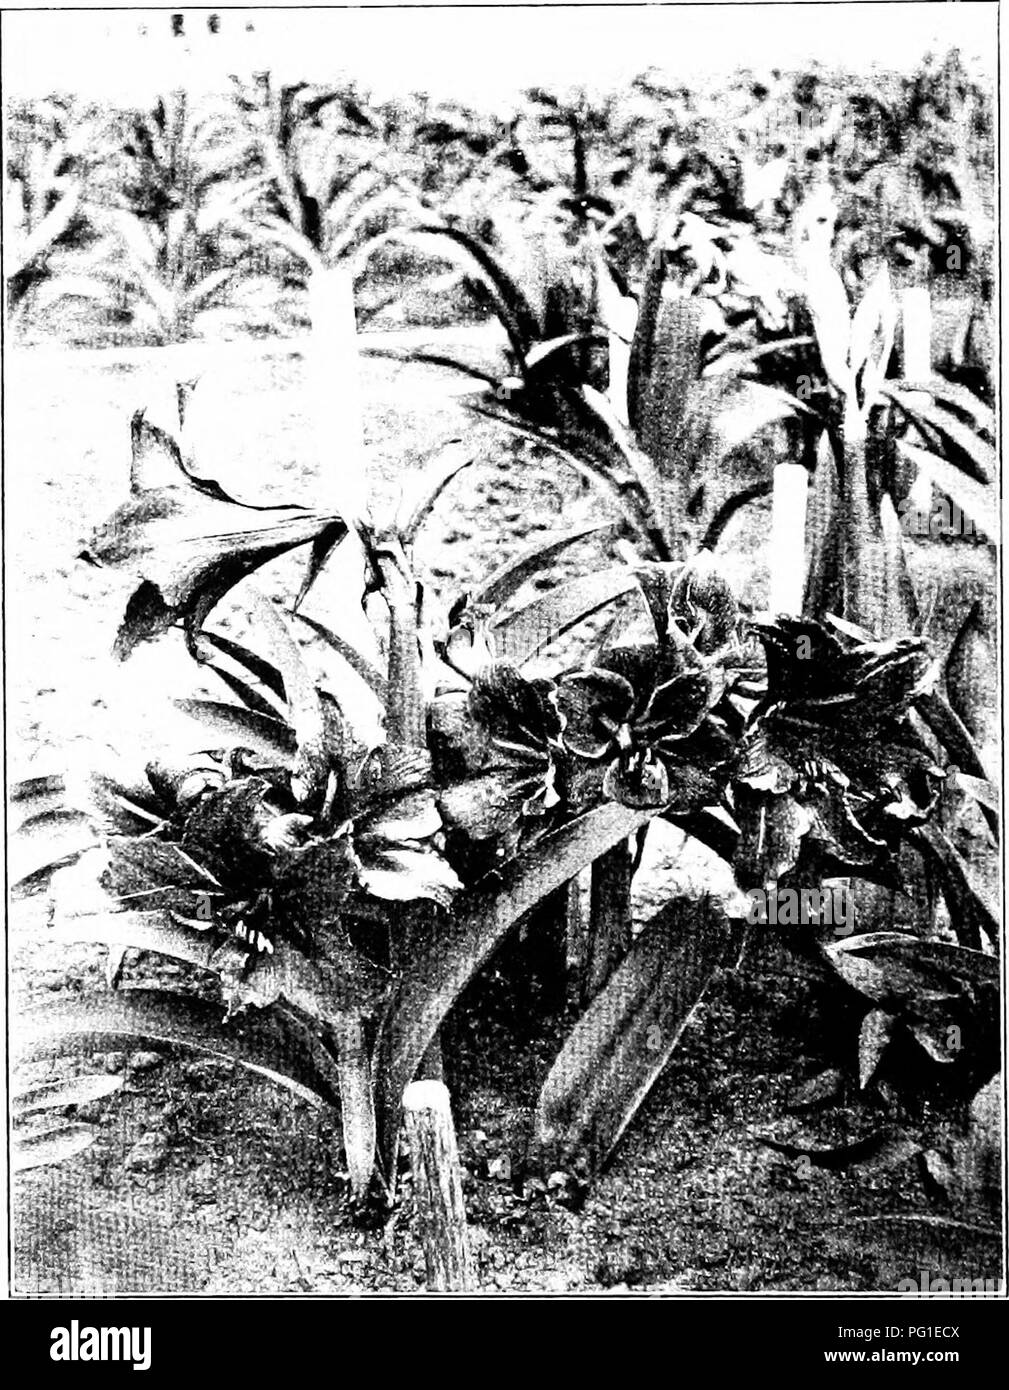 . New creations in plant life : an authoritative account of the life and work of Luther Burbank . Burbank, Luther, 1849-1926; Plant breeding. The iini>roved amaryllis, with blossoms nearly a foot across and of great brilliancy. Please note that these images are extracted from scanned page images that may have been digitally enhanced for readability - coloration and appearance of these illustrations may not perfectly resemble the original work.. Harwood, William Sumner, 1857-1908. New York ; London : Macmillan - Stock Image